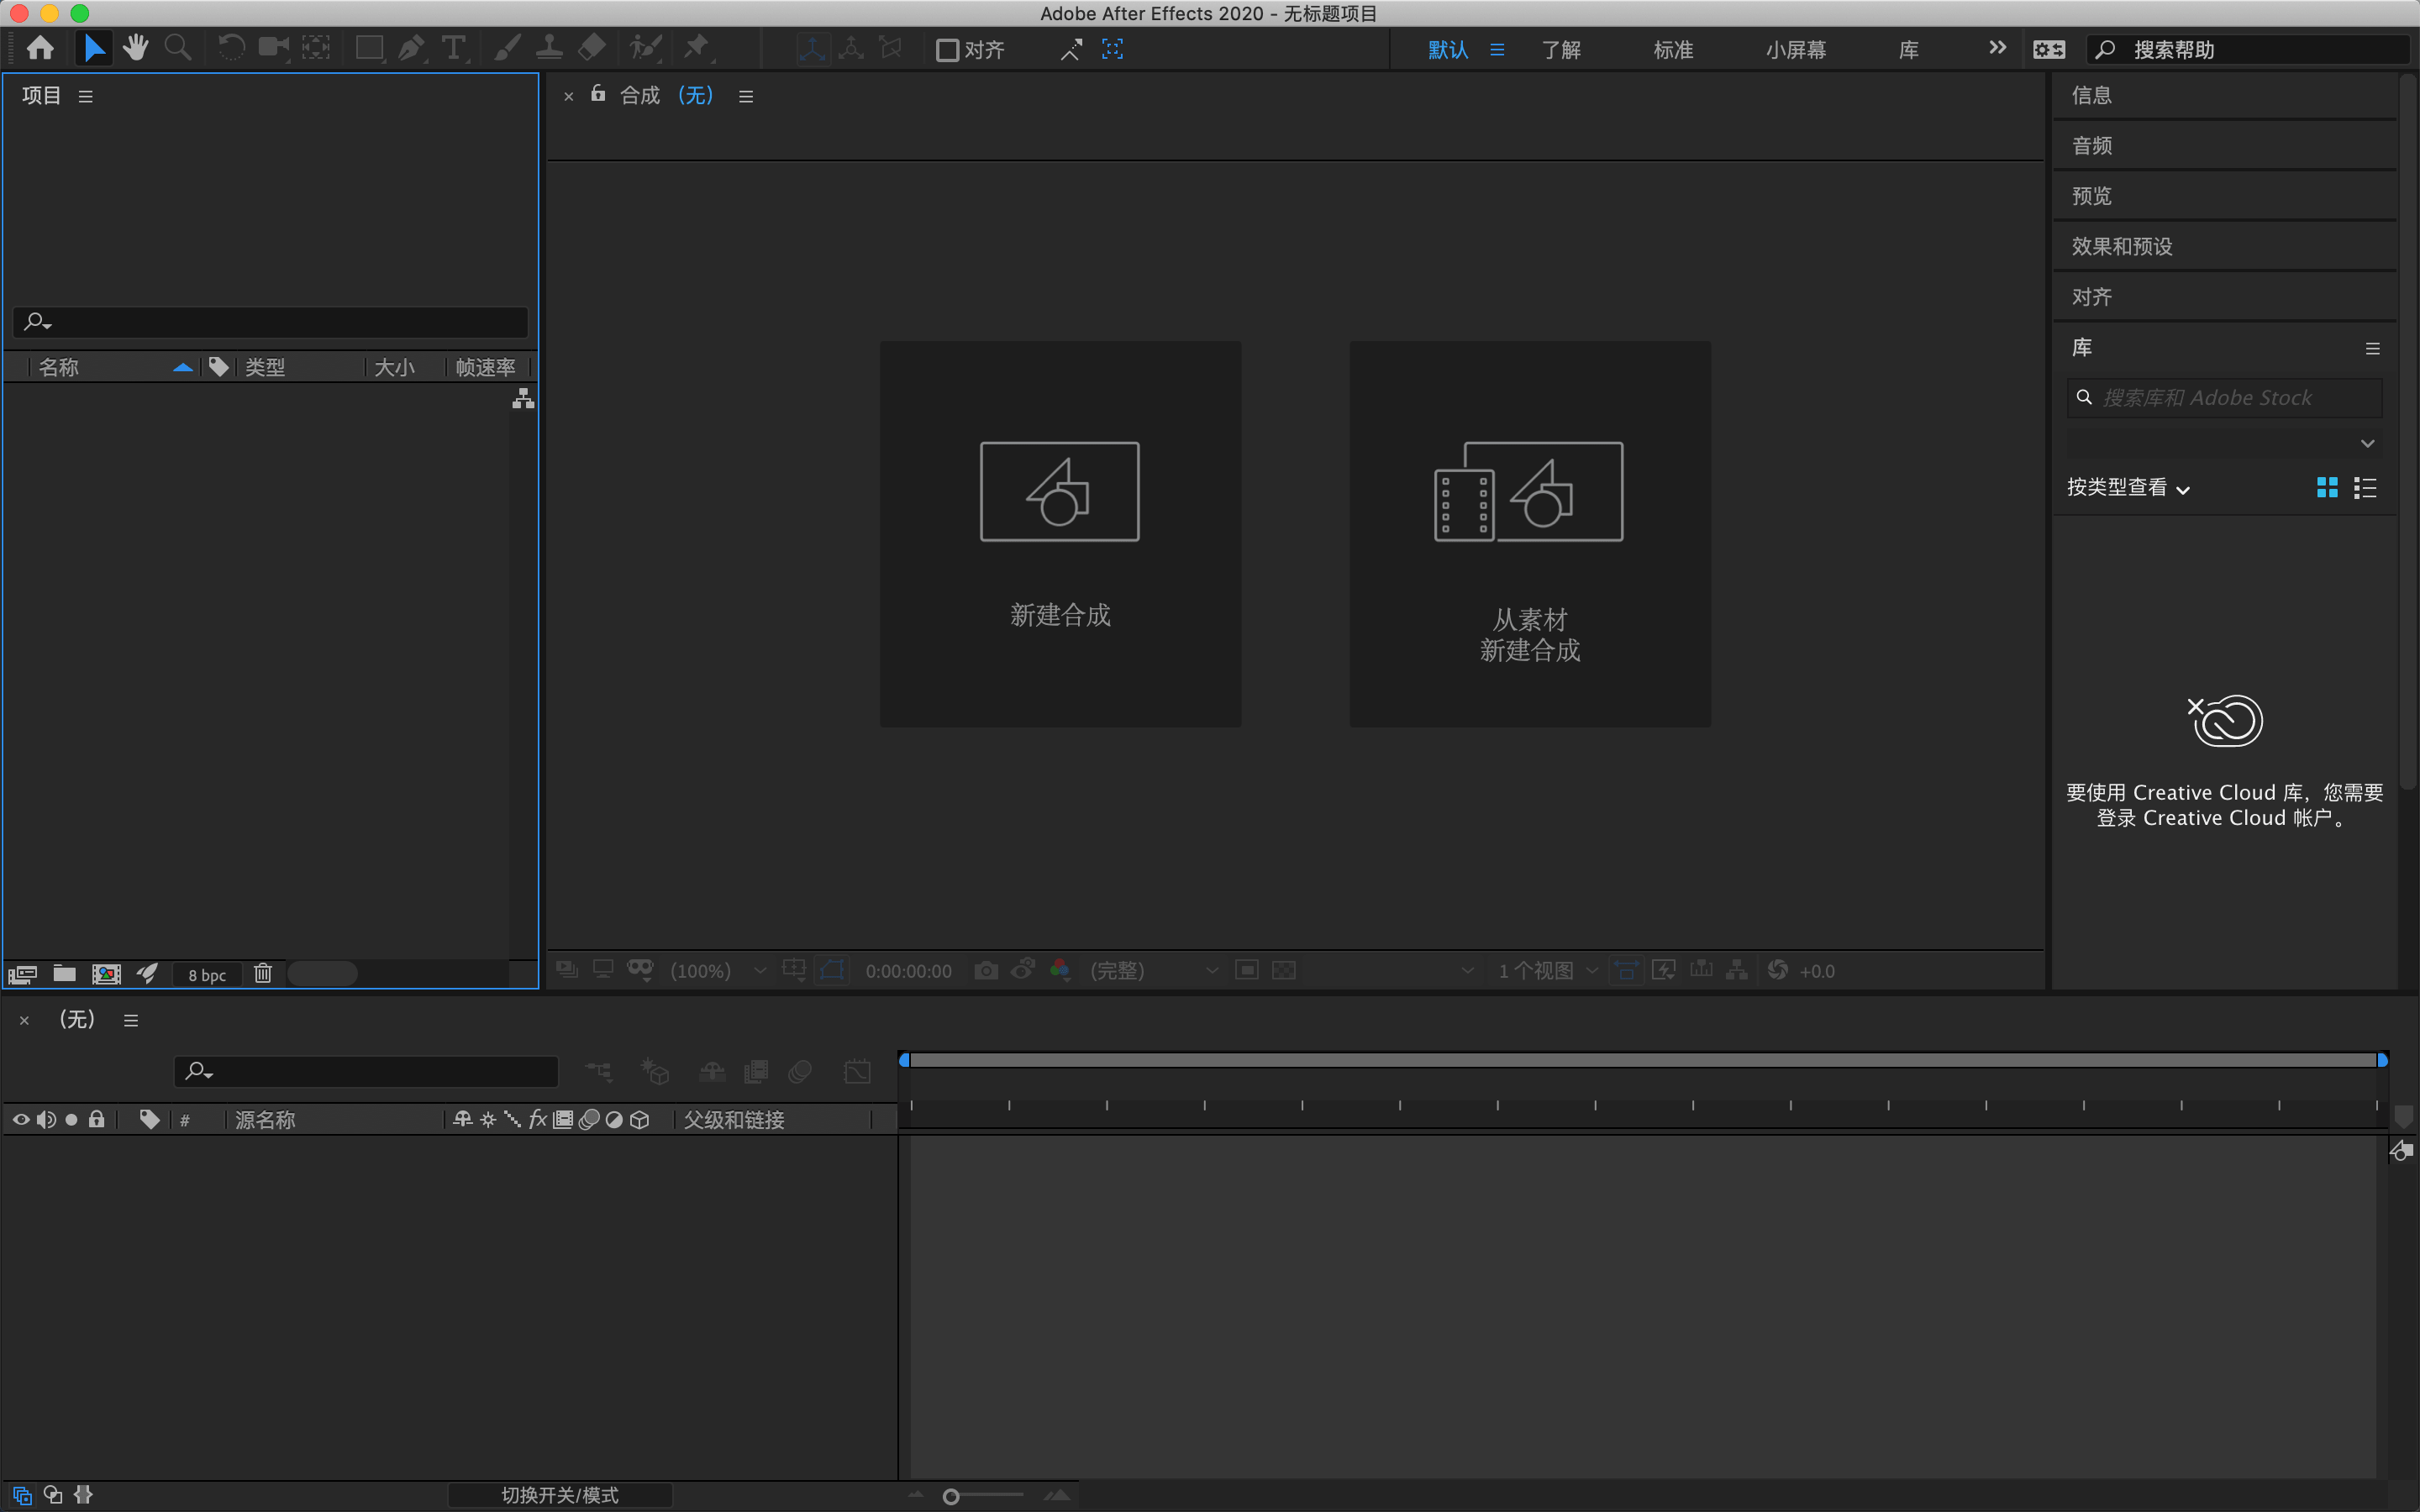 Adobe After Effects 2020 for Mac截图3